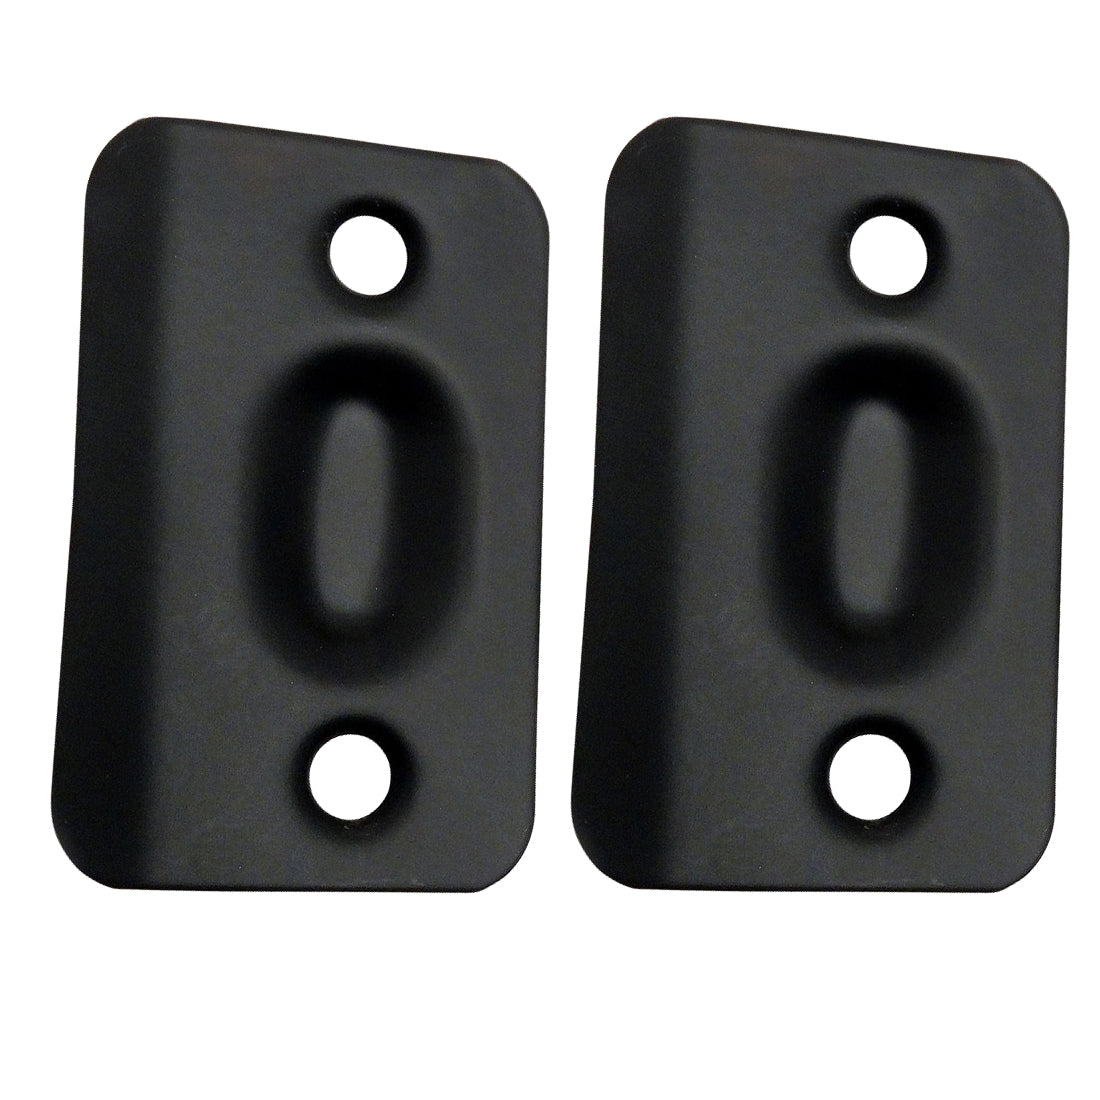 Matte Black Replacement Ball Catch Strike Plates (Pair)